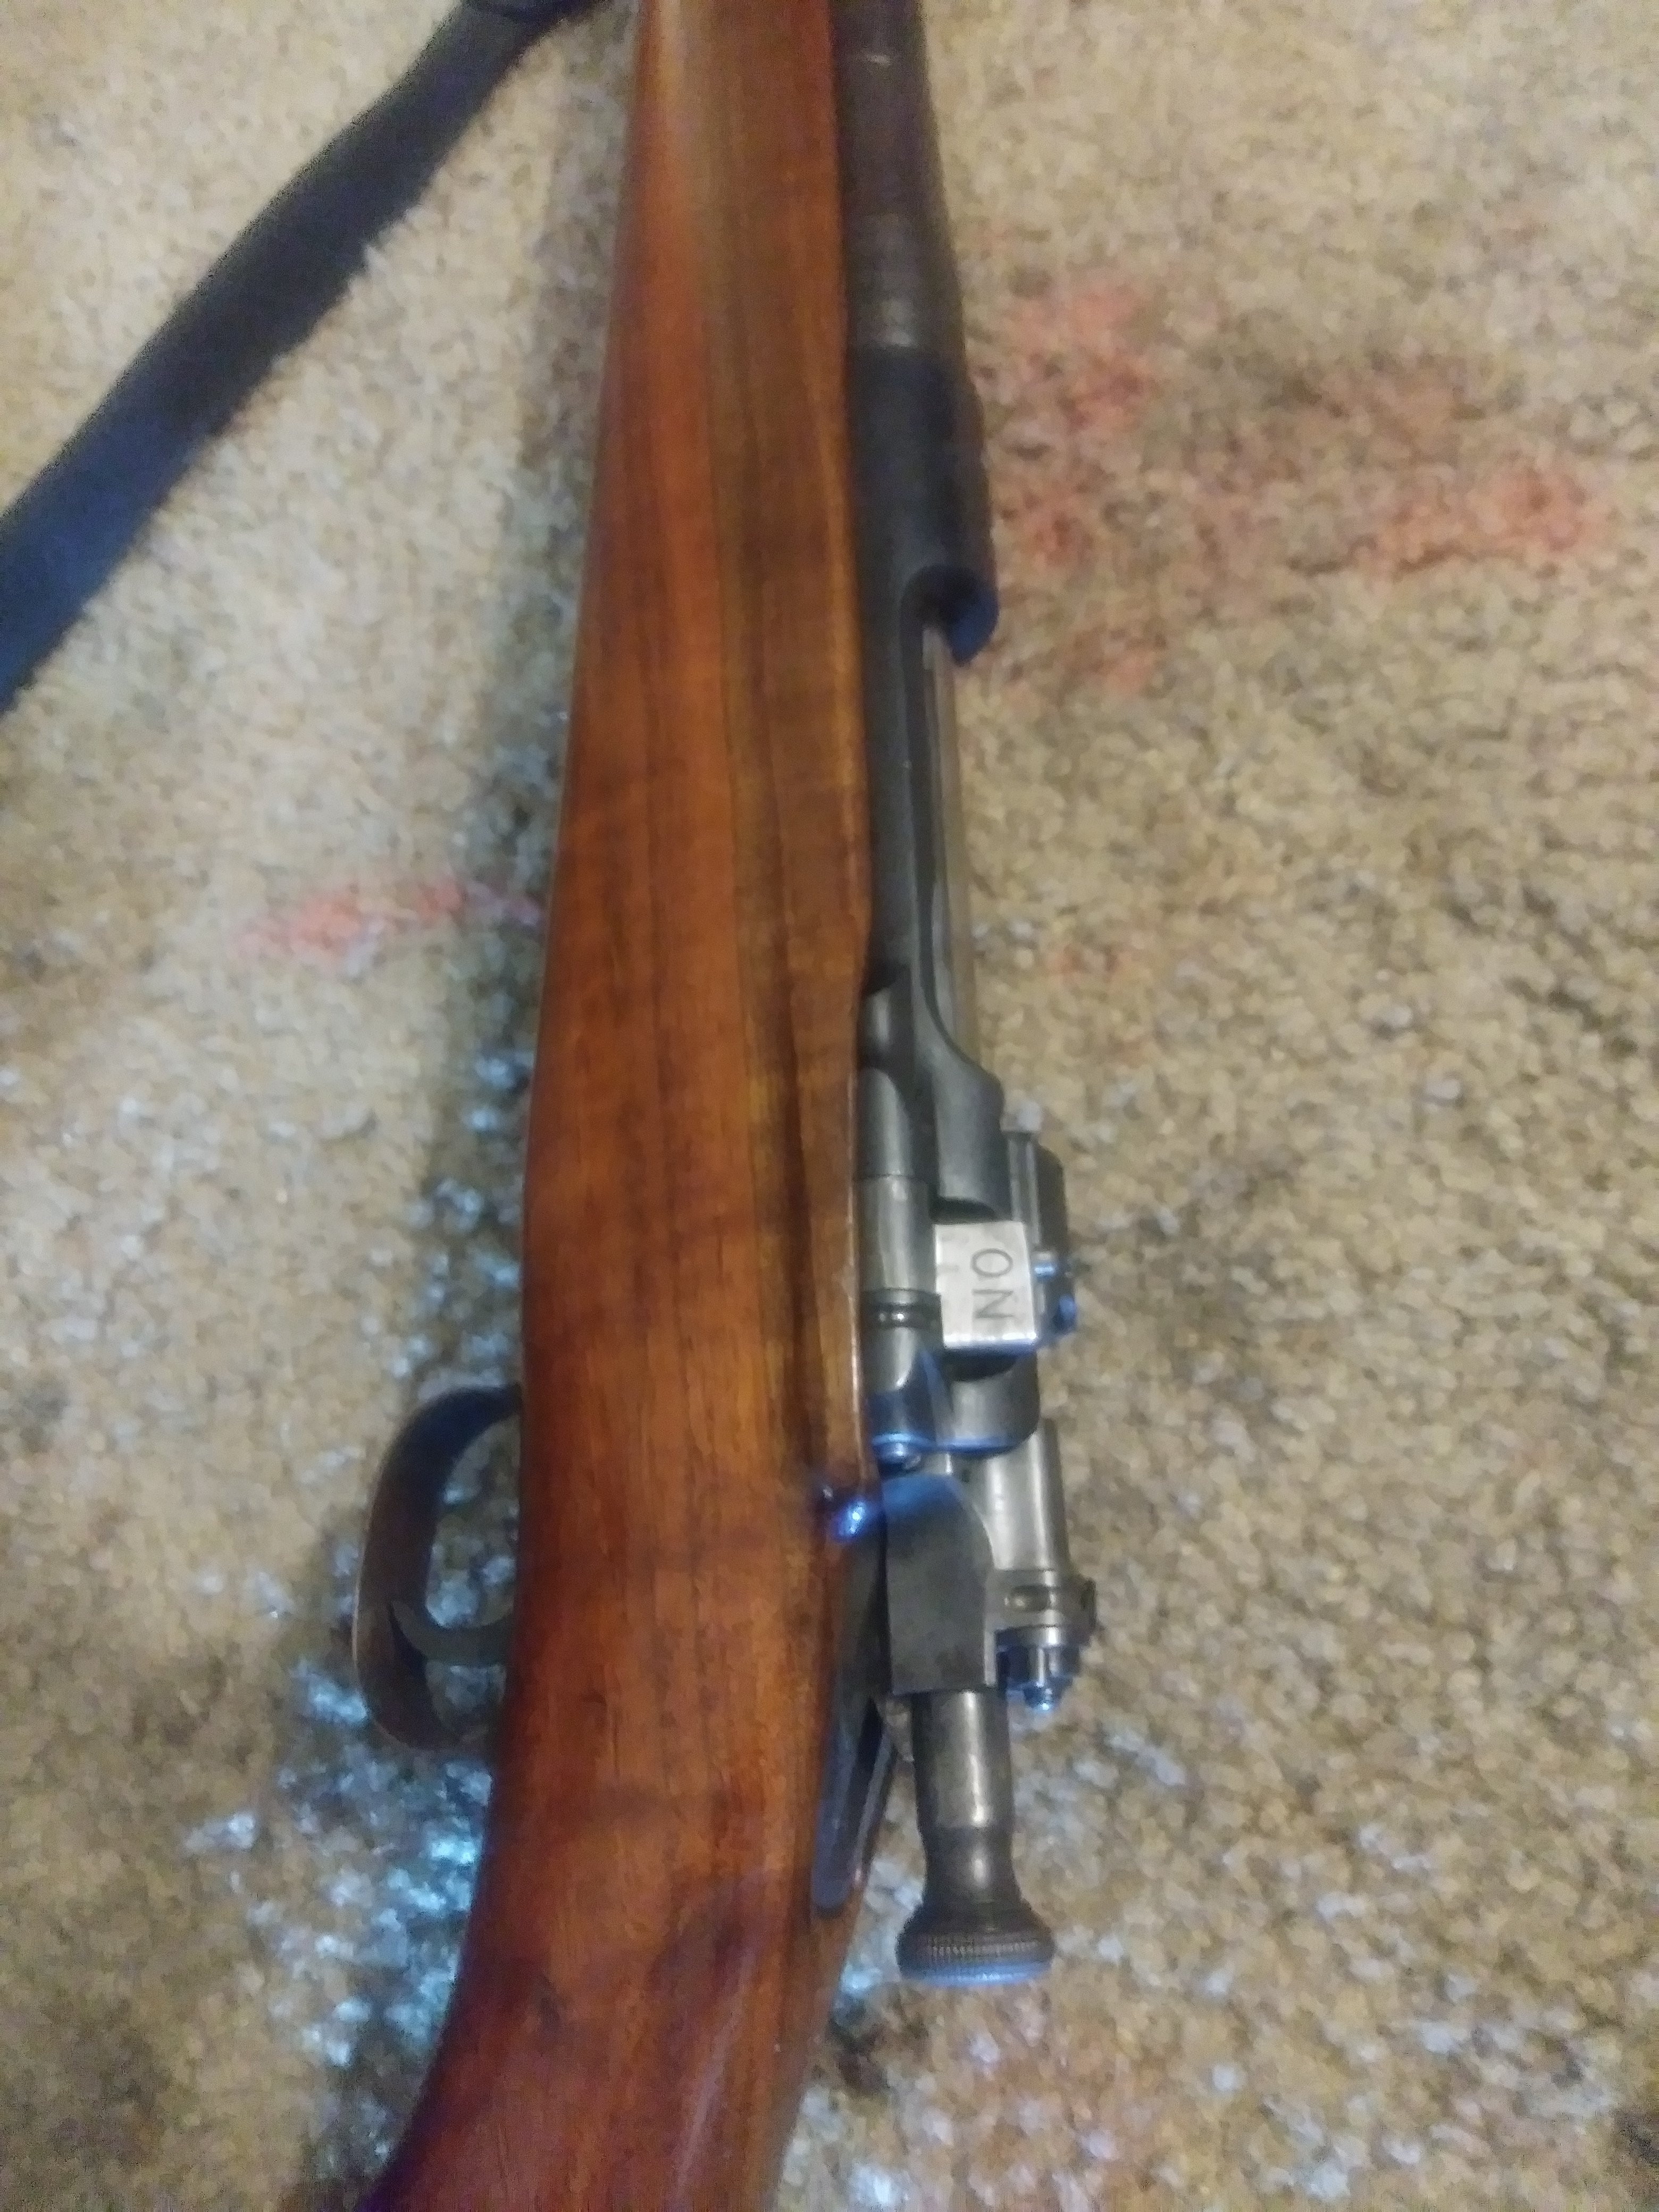 Springfield 1903 30-06 | The Firearms Forum - The Buying